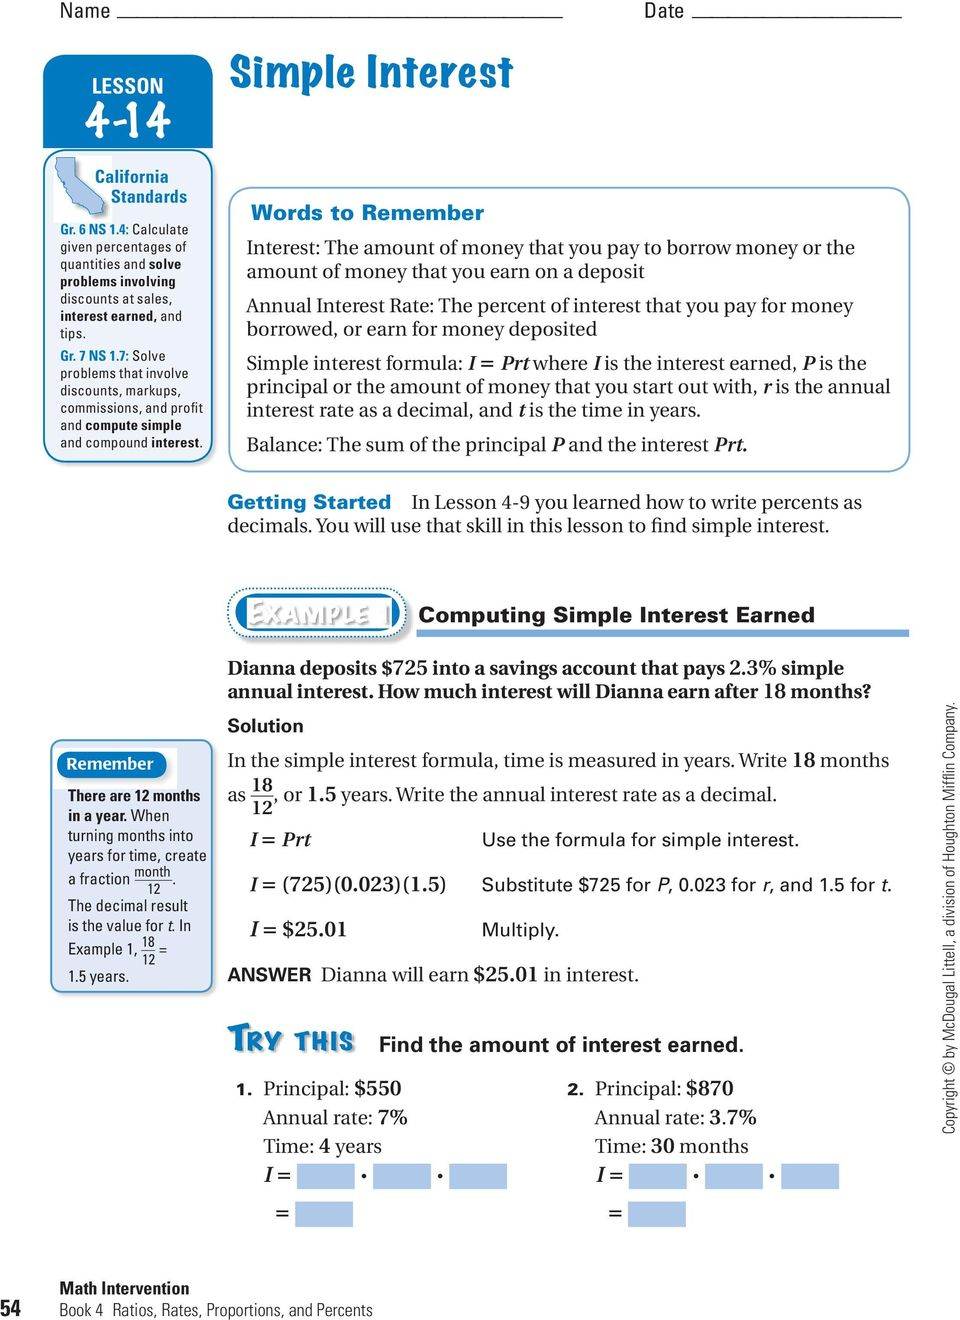 simple and compound interest worksheet Termolak – Simple Interest Word Problems Worksheet